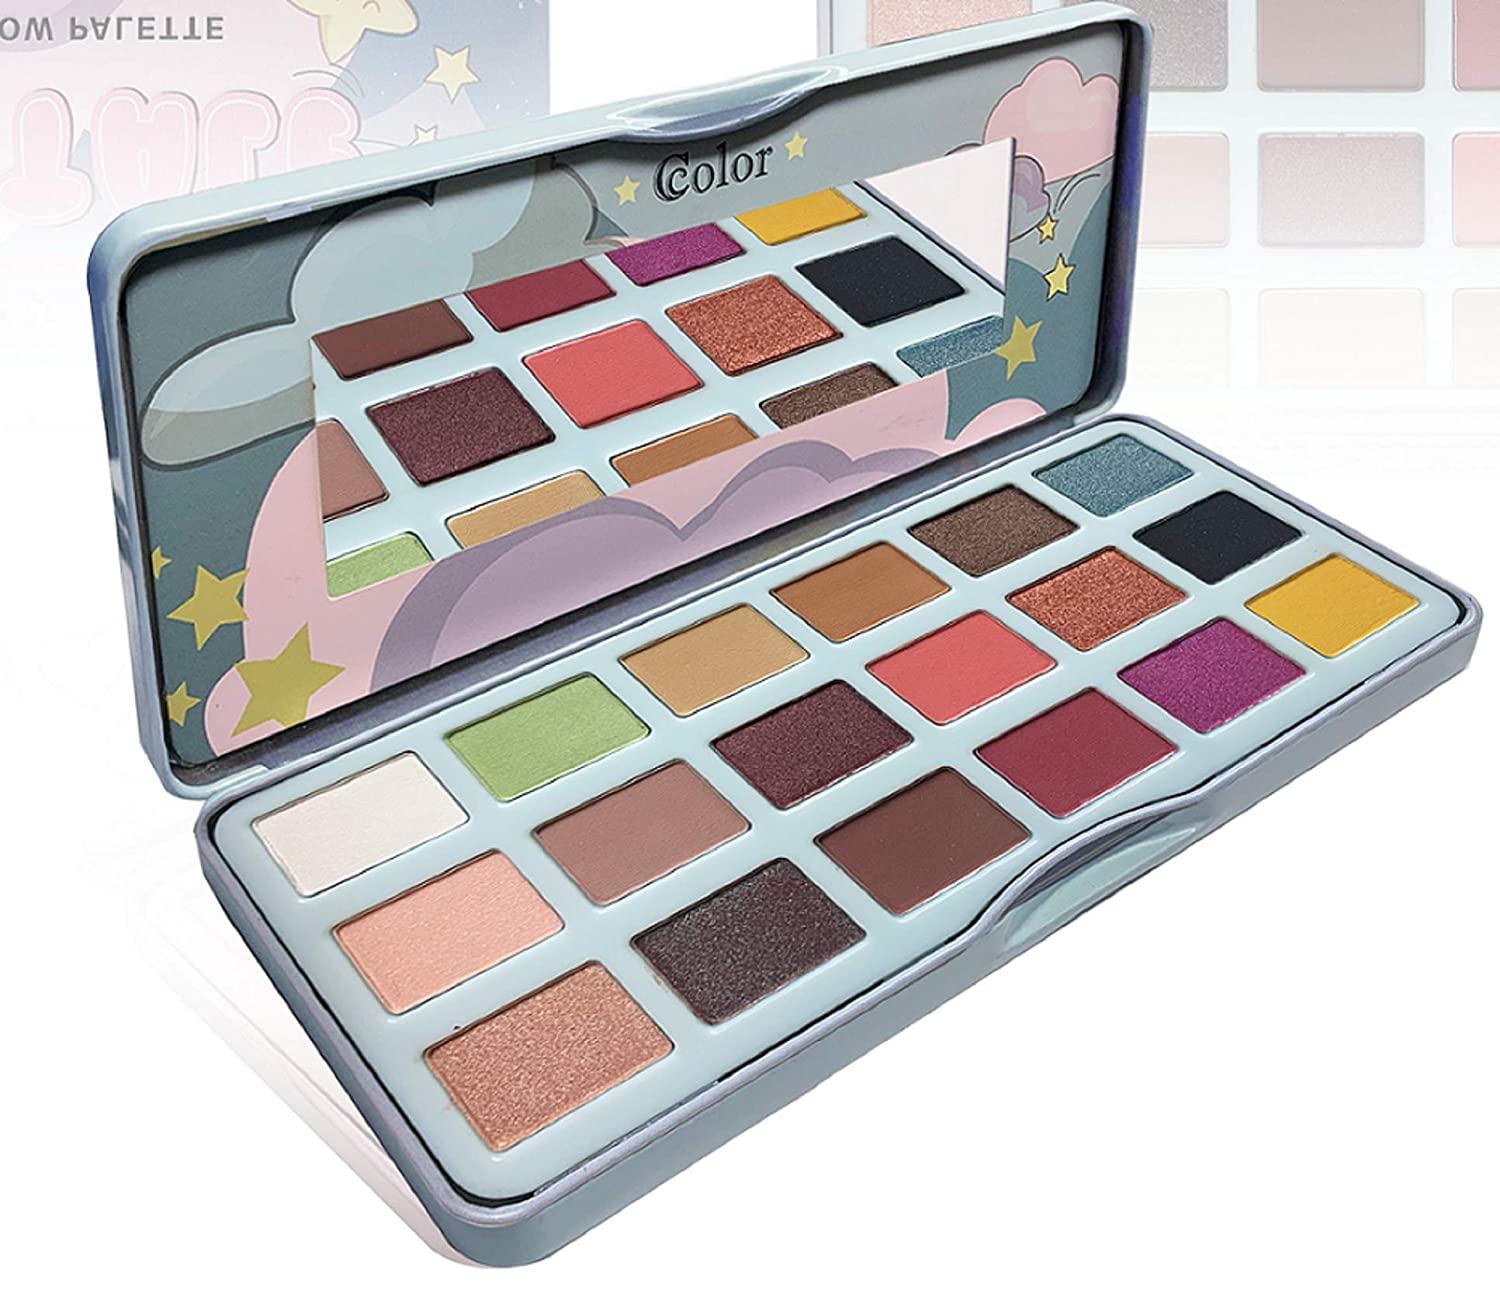 Ccolor Fairy Tale - 18 Color Eyeshadow Palette - Highly Pigmented - Neutral Nudes Bright Colorful Eye Shadows - Makeup Palette